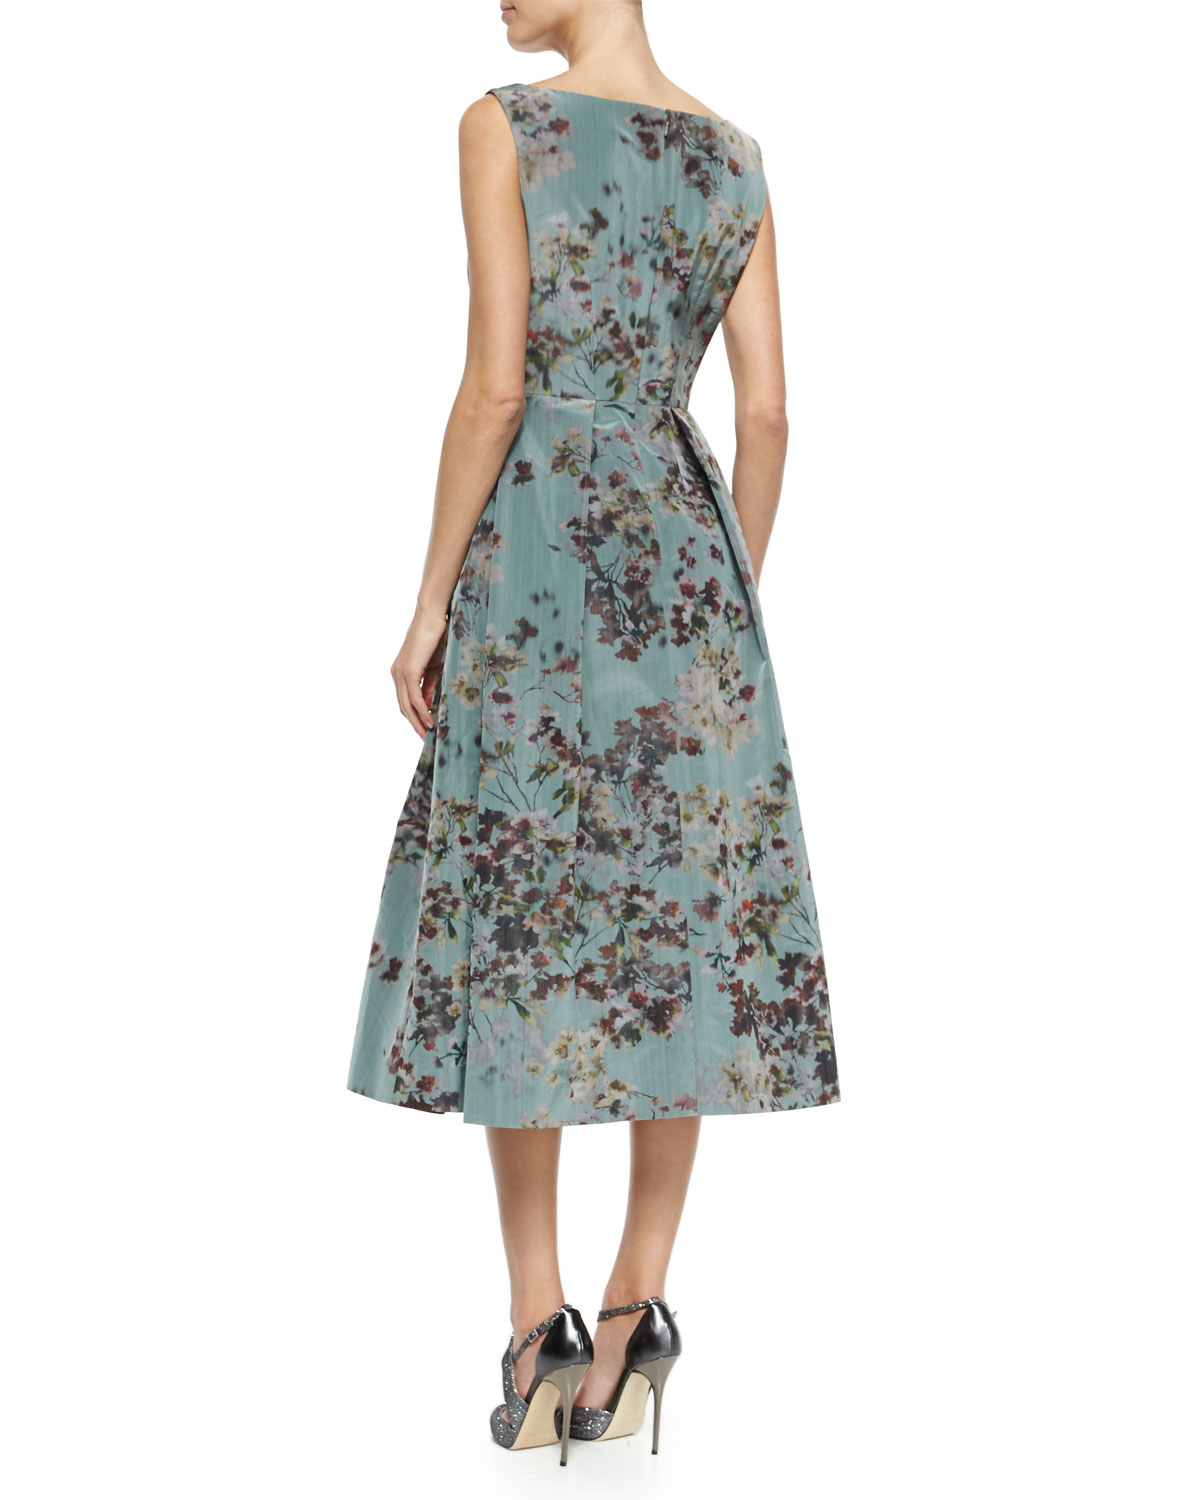 ee7ce20864c28 Kay Unger Floral Sleeveless Tea-Length Cocktail Dress - Lyst